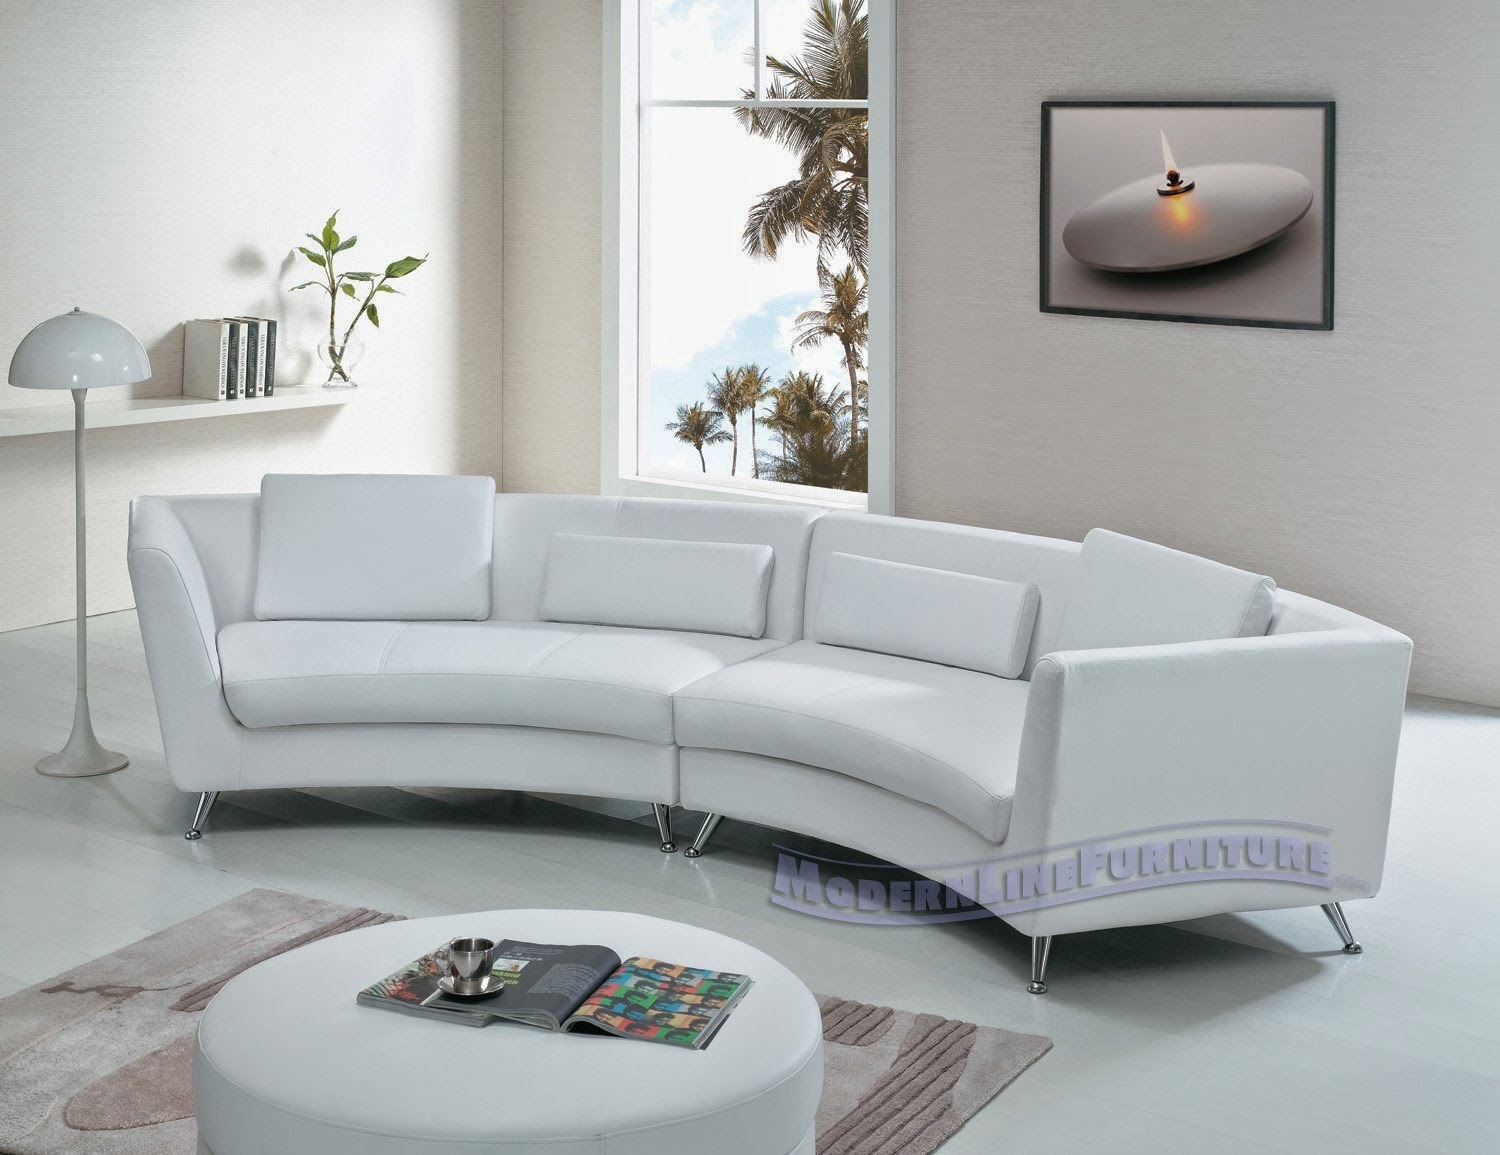 Small White Leather Sofa Living Room White Leather Sofa